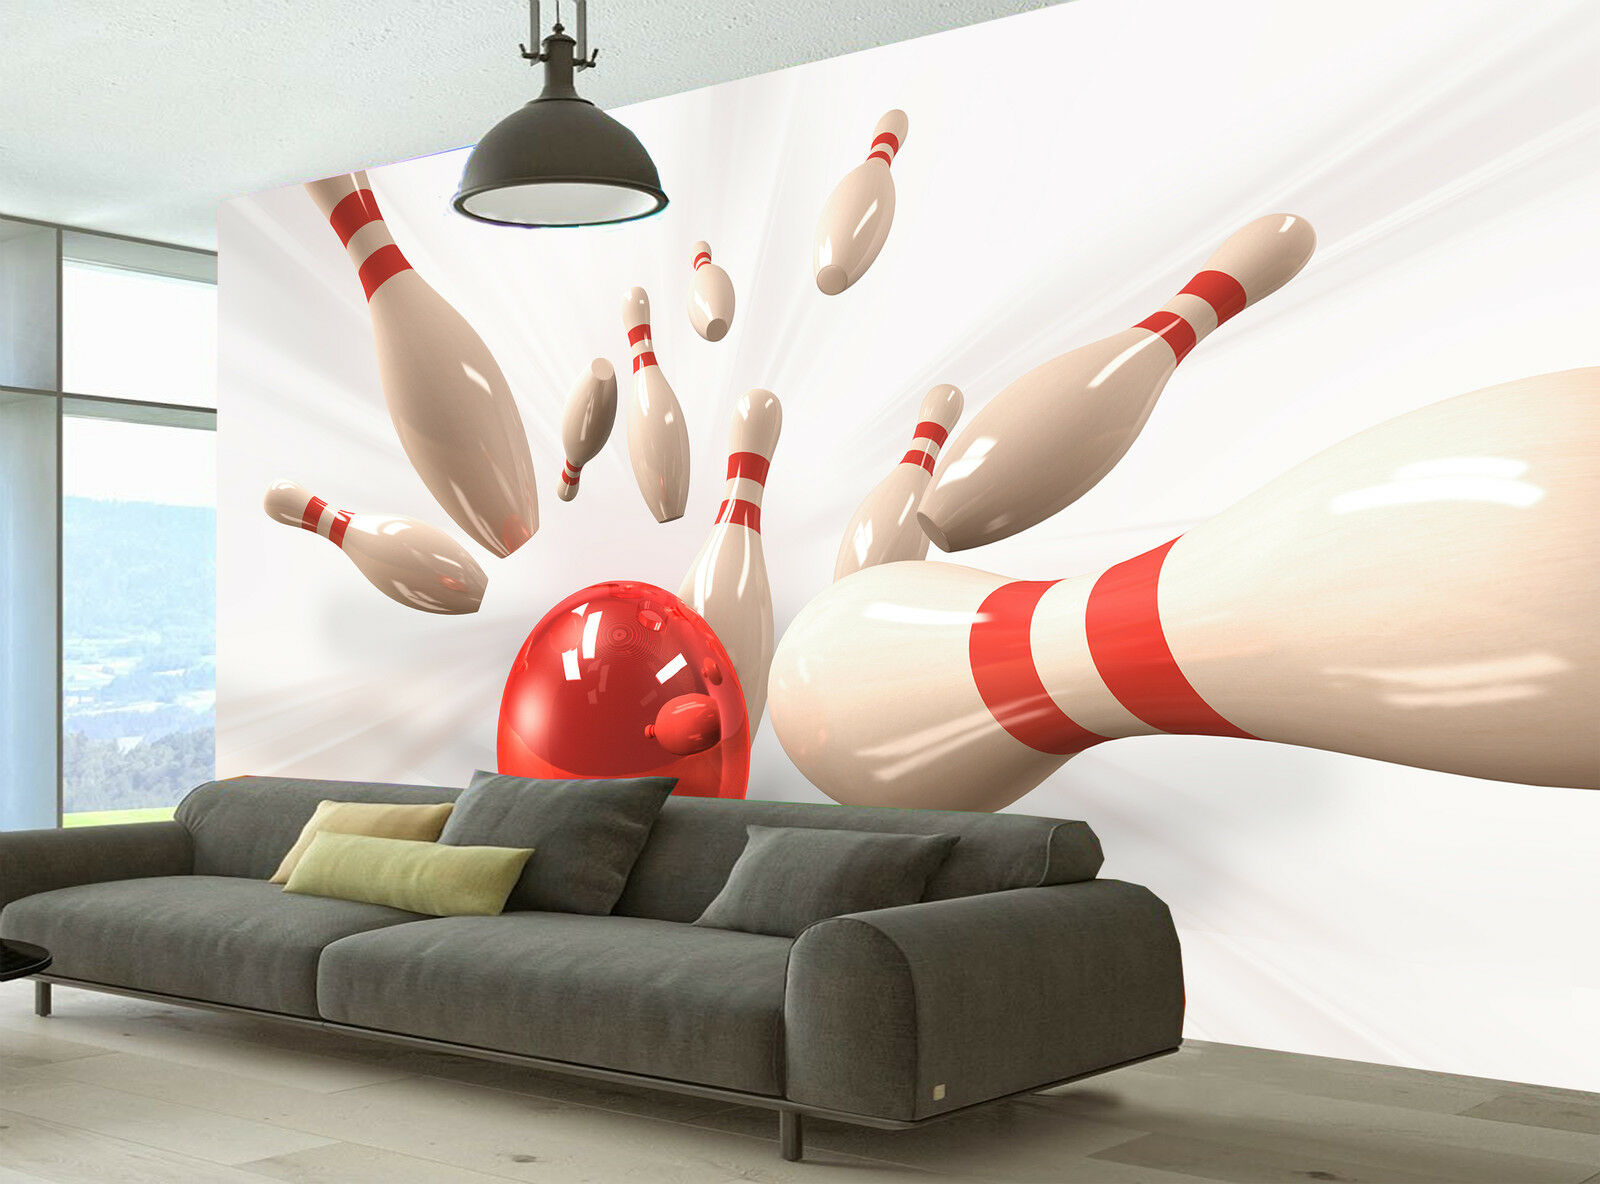 Photo Wallpaper  Bowling  GIANT WALL DECOR PAPER POSTER FOR BEDROOM